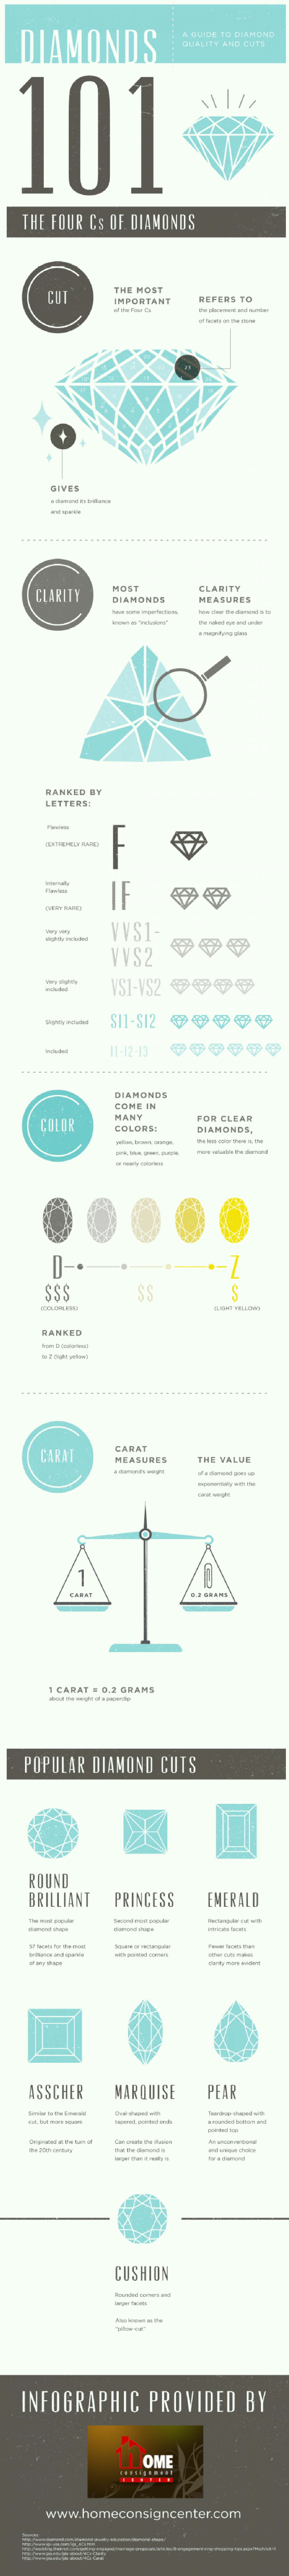 Diamonds 101: A Guide To Diamond Quality and Cuts Infographic